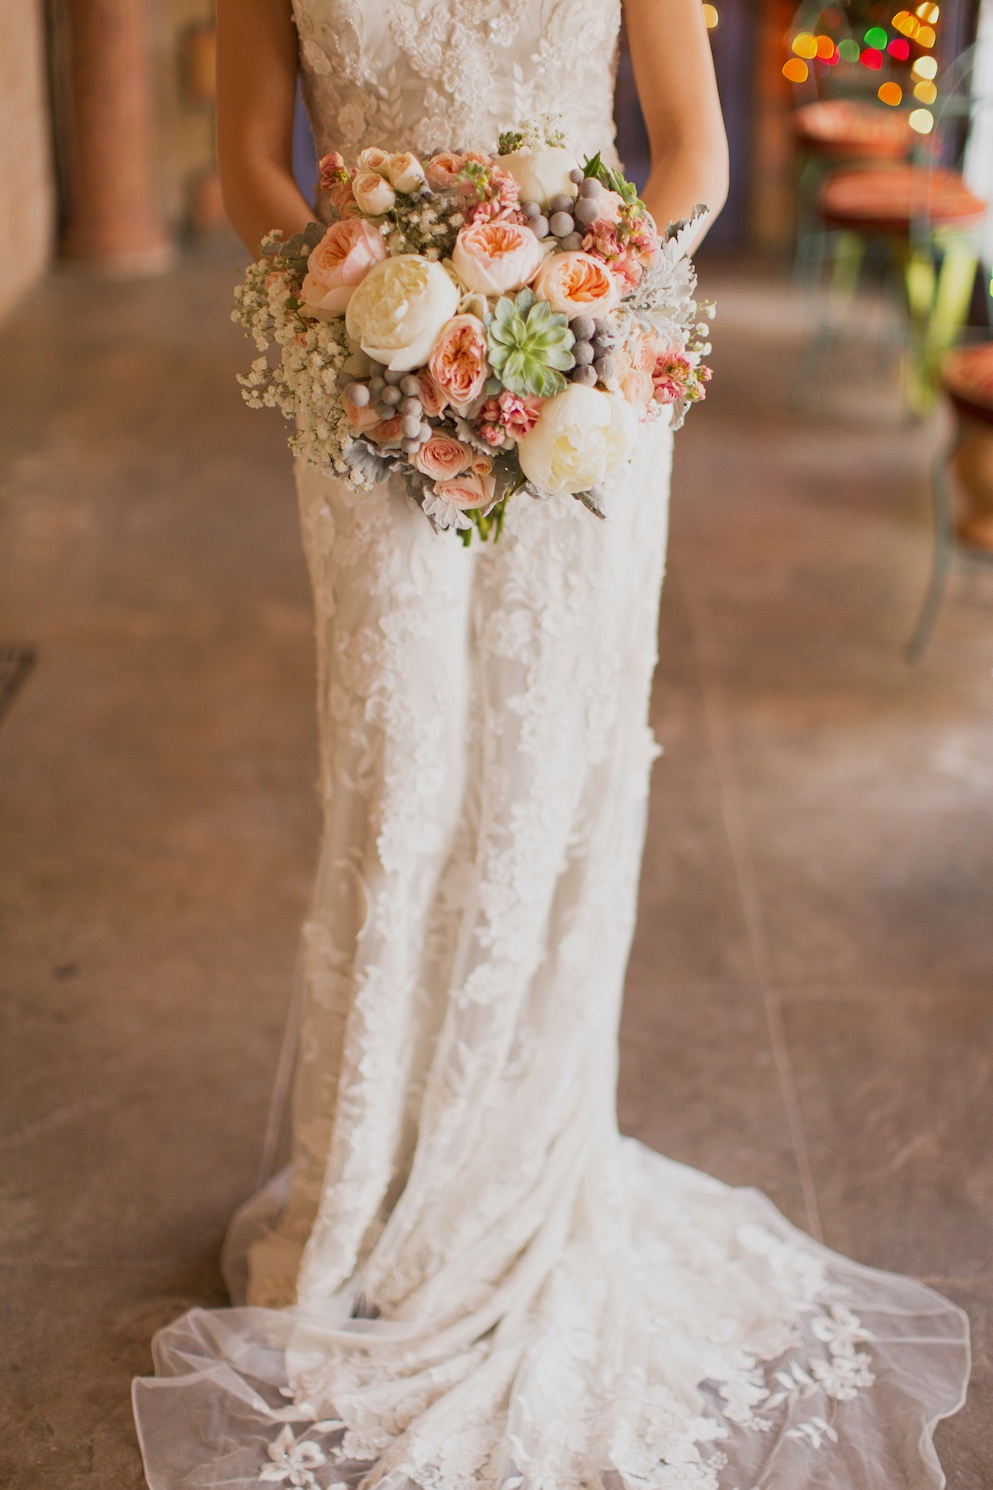 Jane Austen Inspired Wedding flowers utah calie rose alixann loosle photography La Caille Utah Wedding vintage